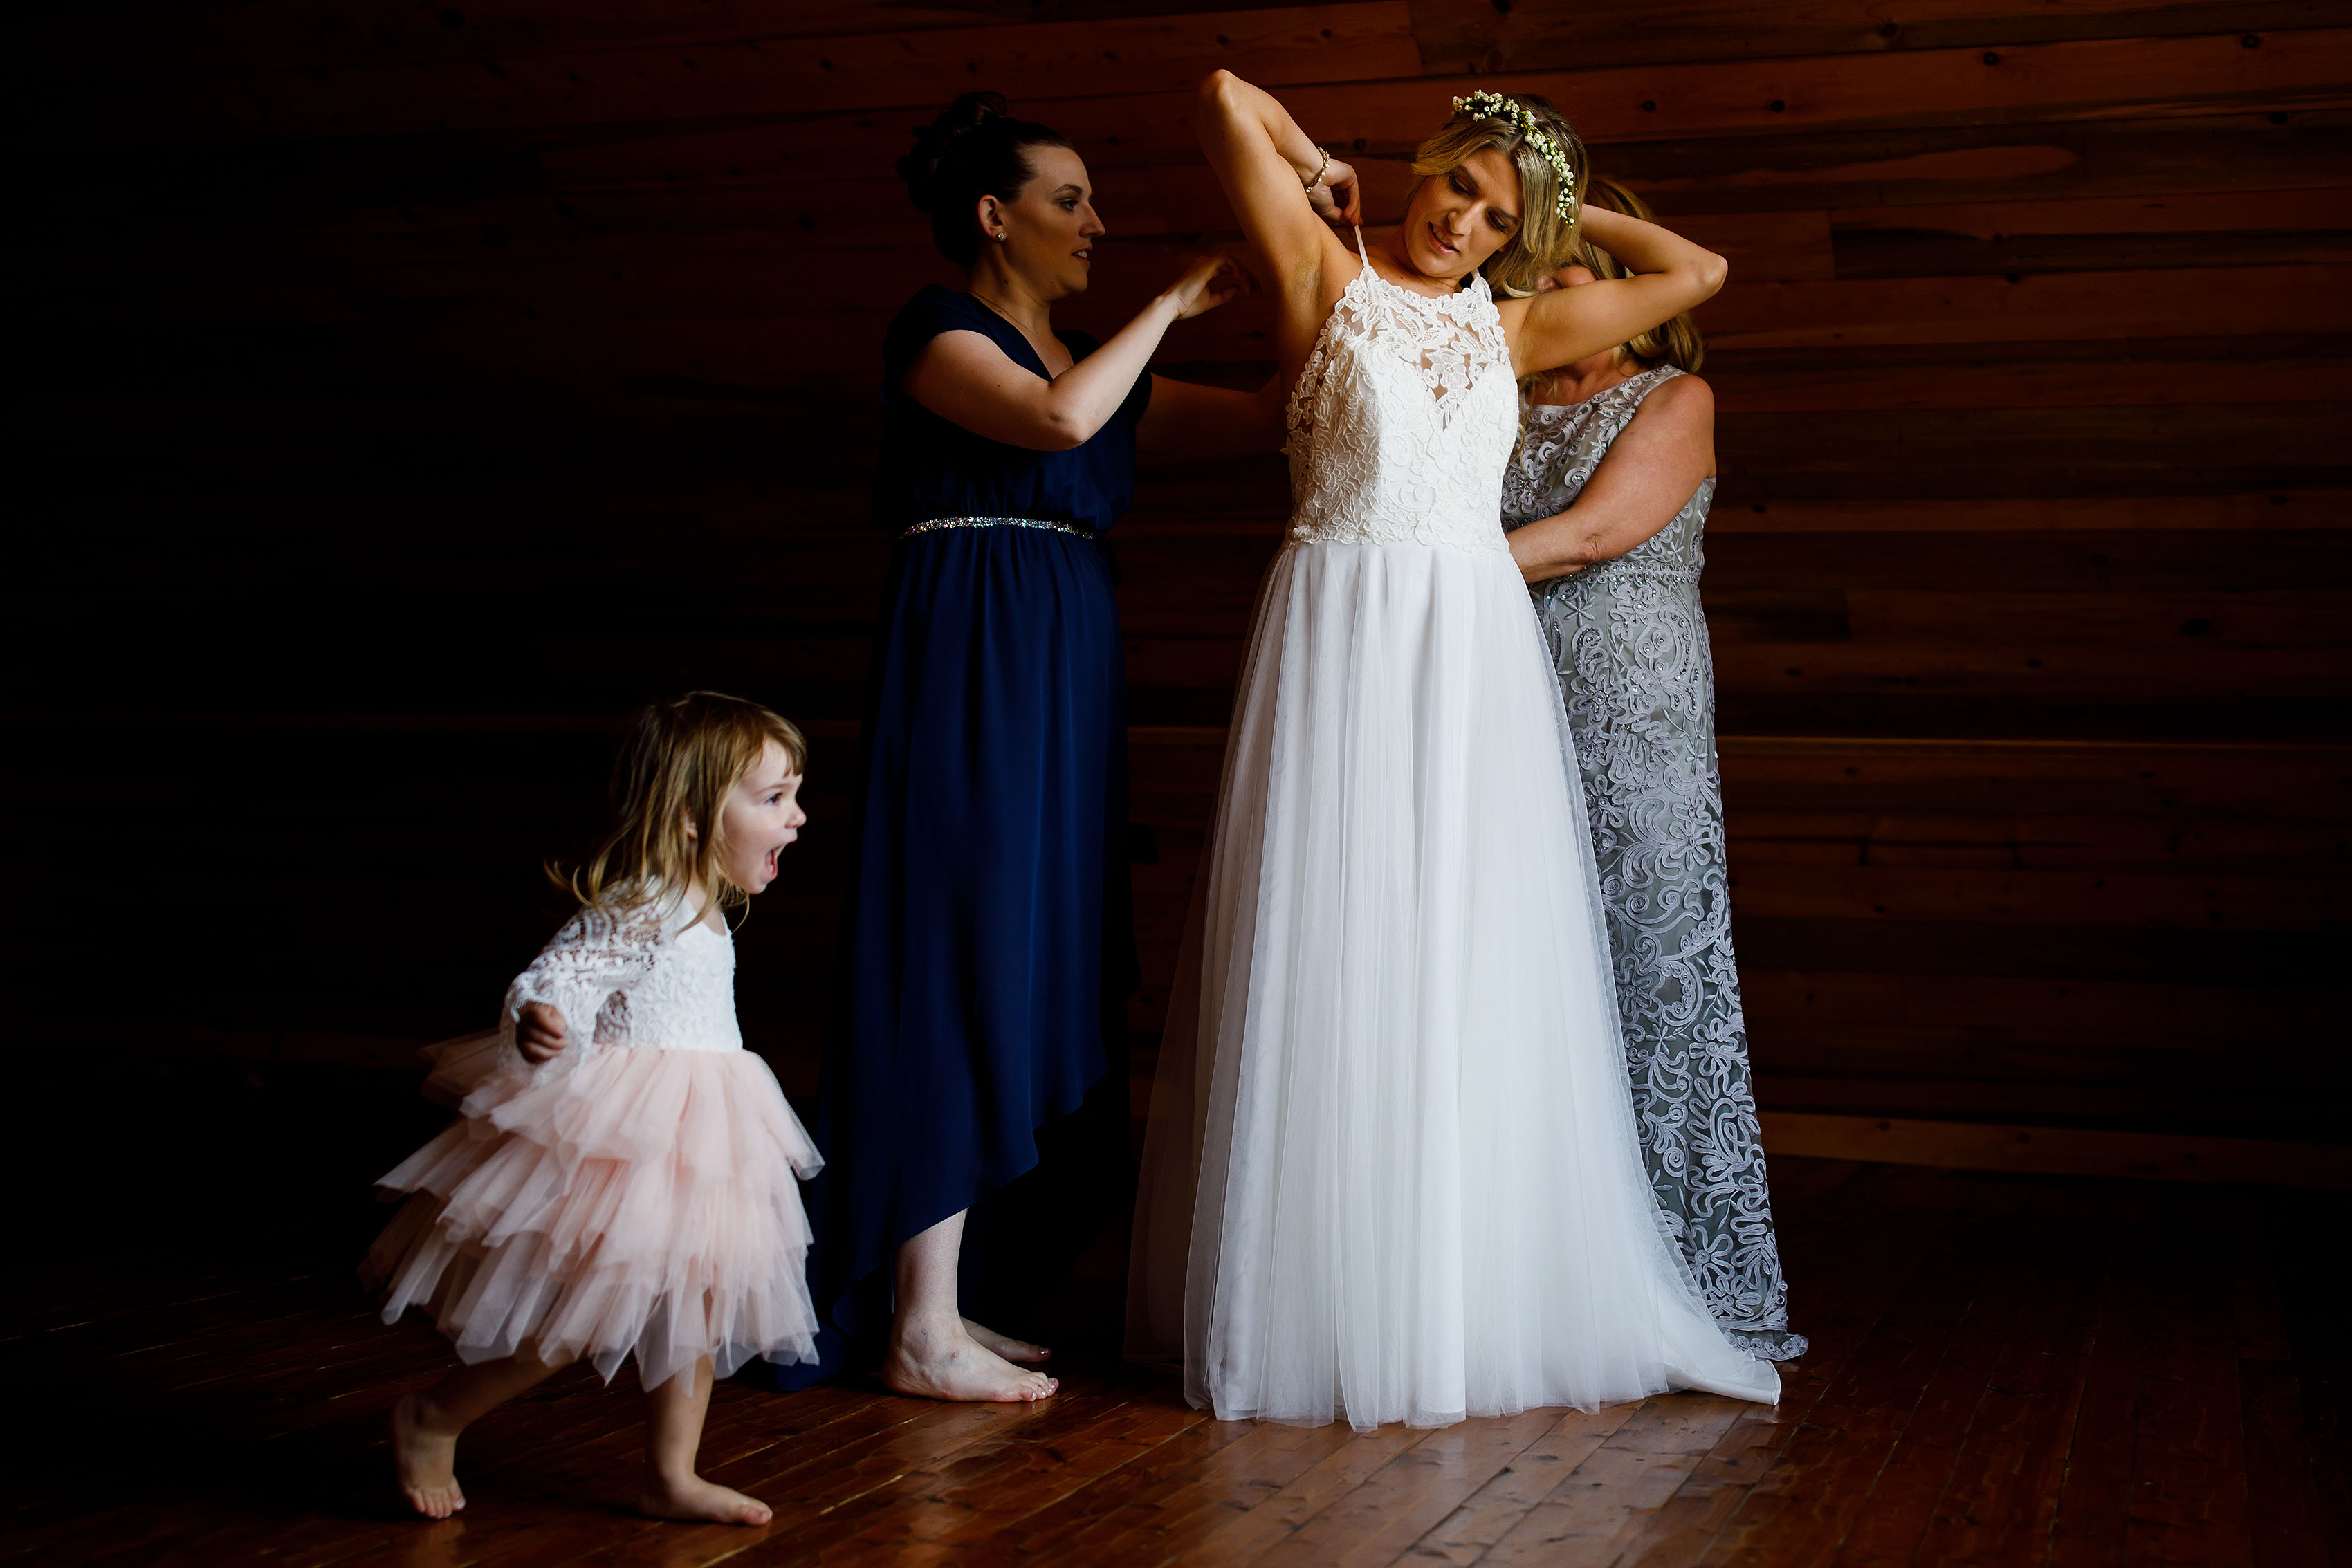 The bride put on her gown as the flower girl runs